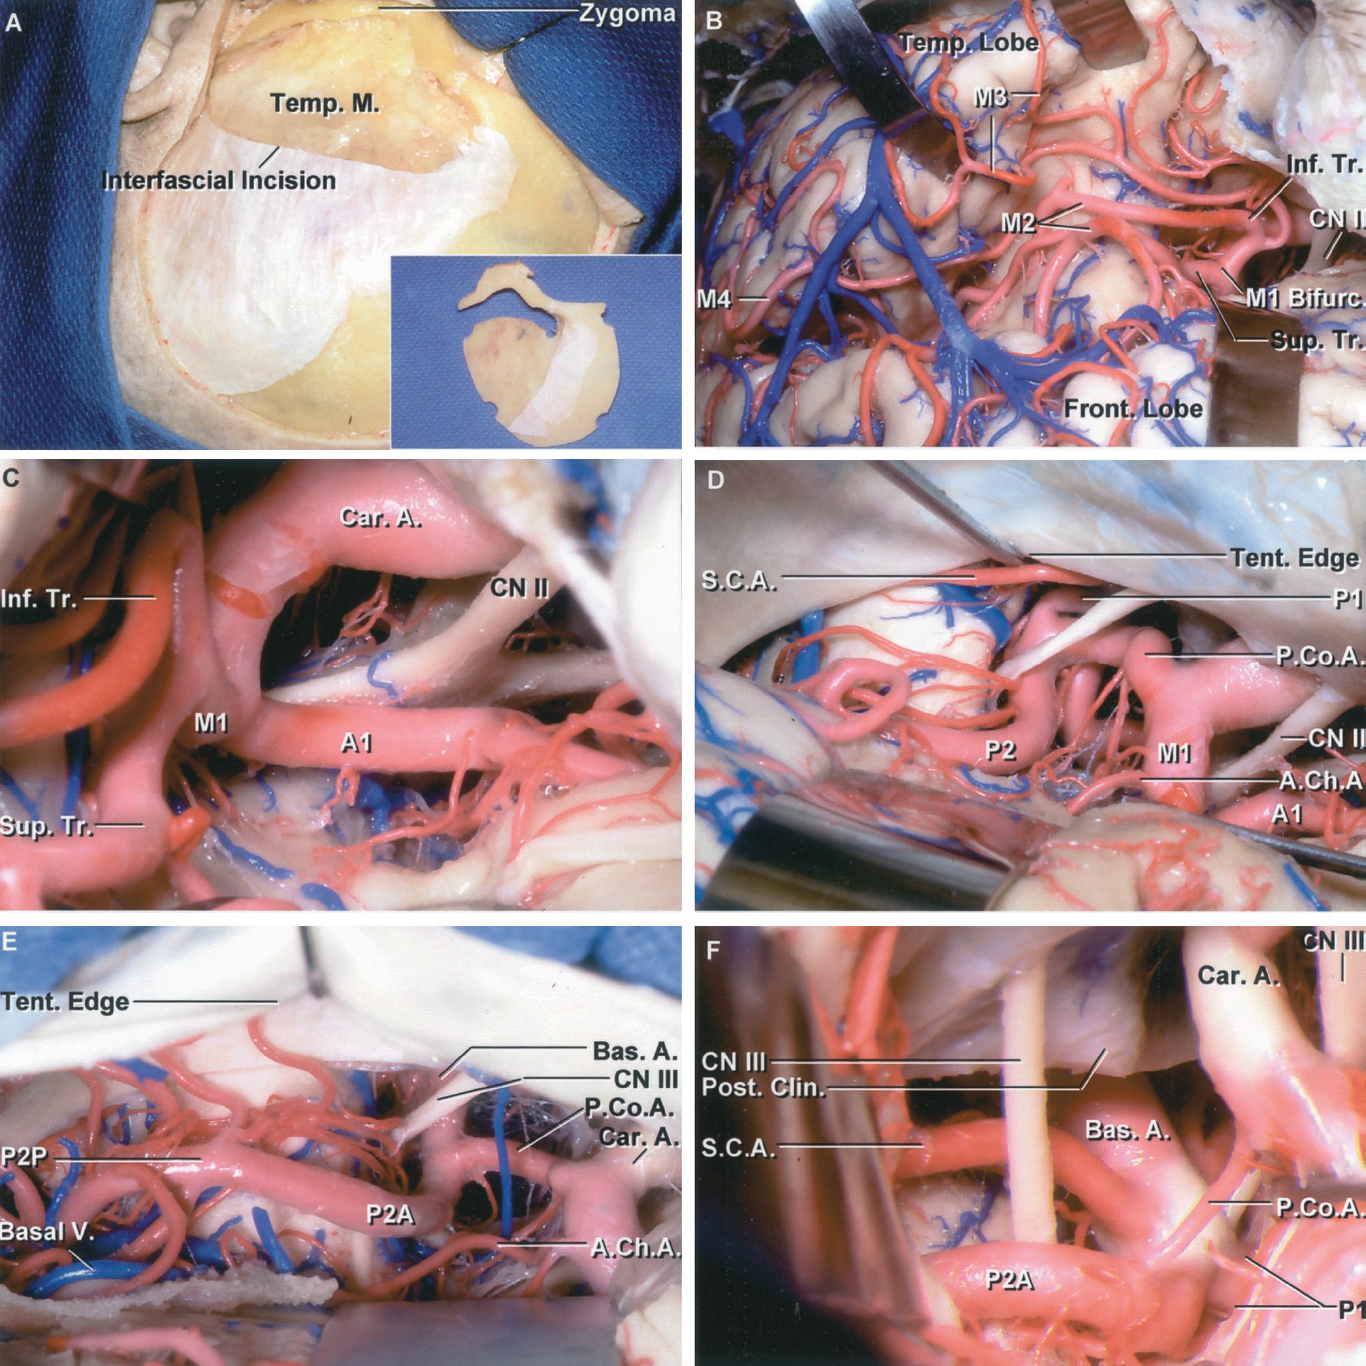 FIGURE 2.7. Orbitozygomatic exposure of the arteries forming the circle of Willis including three variants (D, E, and F) in the size of the PComA. A, the scalp flap has been elevated and the interfascial incision has been completed so that the fat pad containing the branches of the facial nerve to the forehead can be folded downward with the scalp flap. The one-piece orbitozygomatic bone flap is shown in the inset. B, the sylvian fissure has been opened. The M1 bifurcates to form superior and inferior trunks of similar size. The branches forming the M2 begin at the limen insula and cross the insula. The branches forming the M3 loop over the opercular lips, and the M4 branches course on the lateral convexity. C, enlarged view of the carotid bifurcation. The M1 divides into superior and inferior trunks before reaching the limen insula, which is located at the lateral edge of the anterior perforated substance. A large A1 passes medially above the chiasm. D, the exposure has been directed under the temporal lobe. A large PComA of the fetal type provides the majority of flow to the P2 segment. As the PComA increases in size, it tends to shift laterally. The junction of the posterior communicating and P2 is situated medial to the oculomotor nerve. The tentorial edge has been depressed to expose the superior cerebellar artery. E, another subtemporal exposure showing a configuration in which the P1 and PComA are of approximately equal size. F, exposure oriented like C, showing a small PComA with the predominant P2 origin being from the P1. A., artery; A.Ch.A., anterior choroidal artery; Bas., basilar; Bifurc., bifurcation; Car., carotid; Clin., clinoid; CN, cranial nerve; Front., frontal; Inf., inferior; M., muscle; P.Co.A., posterior communicating artery; Post., posterior; S.C.A., superior cerebellar artery; Sup., superior; Temp., temporal, temporalis; Tent., tentorial; Tr., trunk; V., vein.